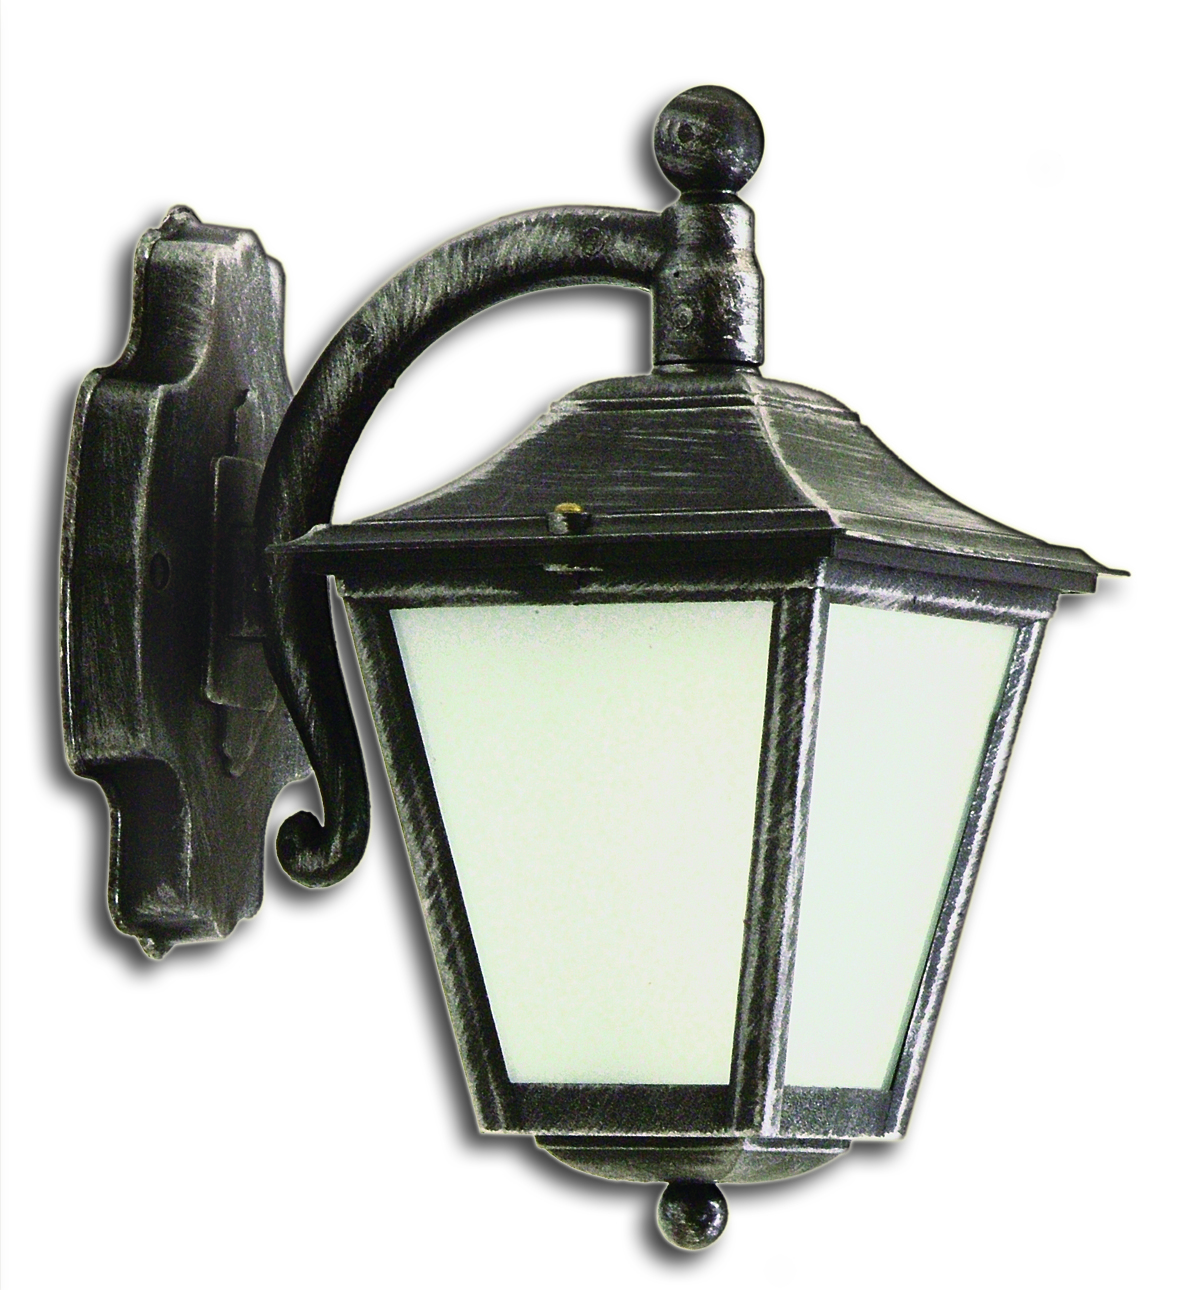 LIDO Outdoor Plastic Wall Sconce, Silver Patina Finish PN186